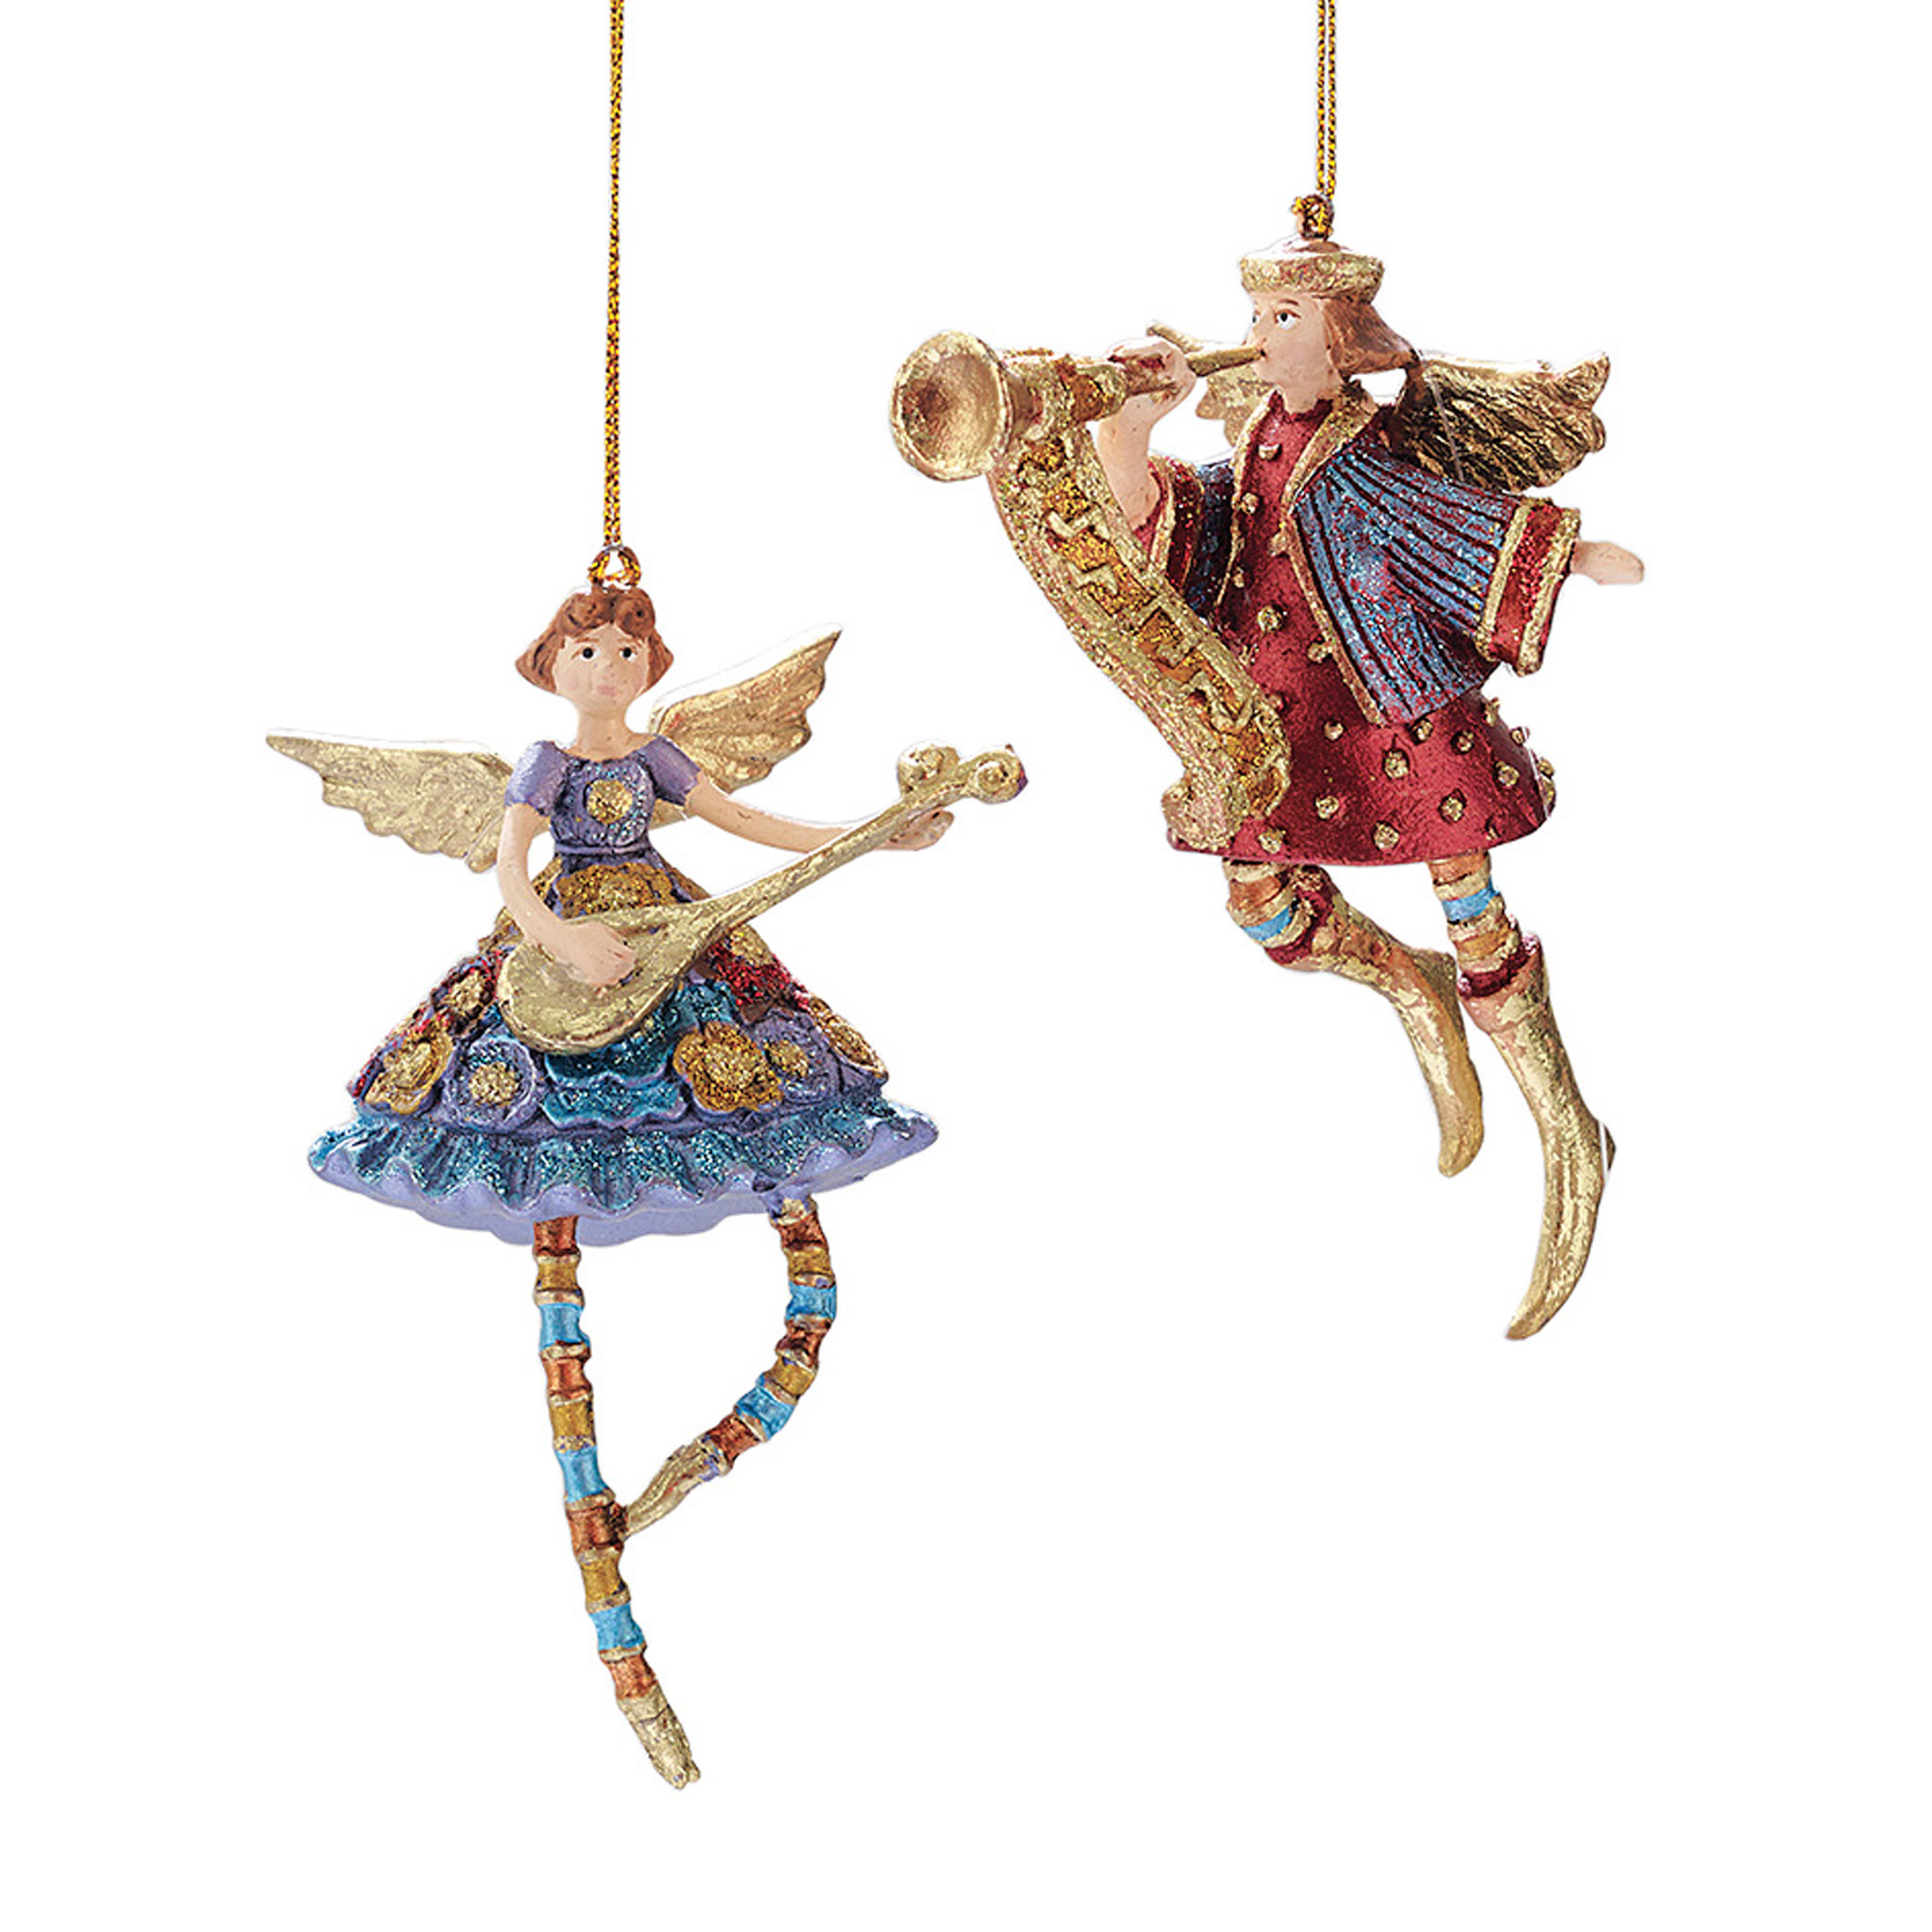 Lute & Trumpeter Angel Ornaments, Set Of 2